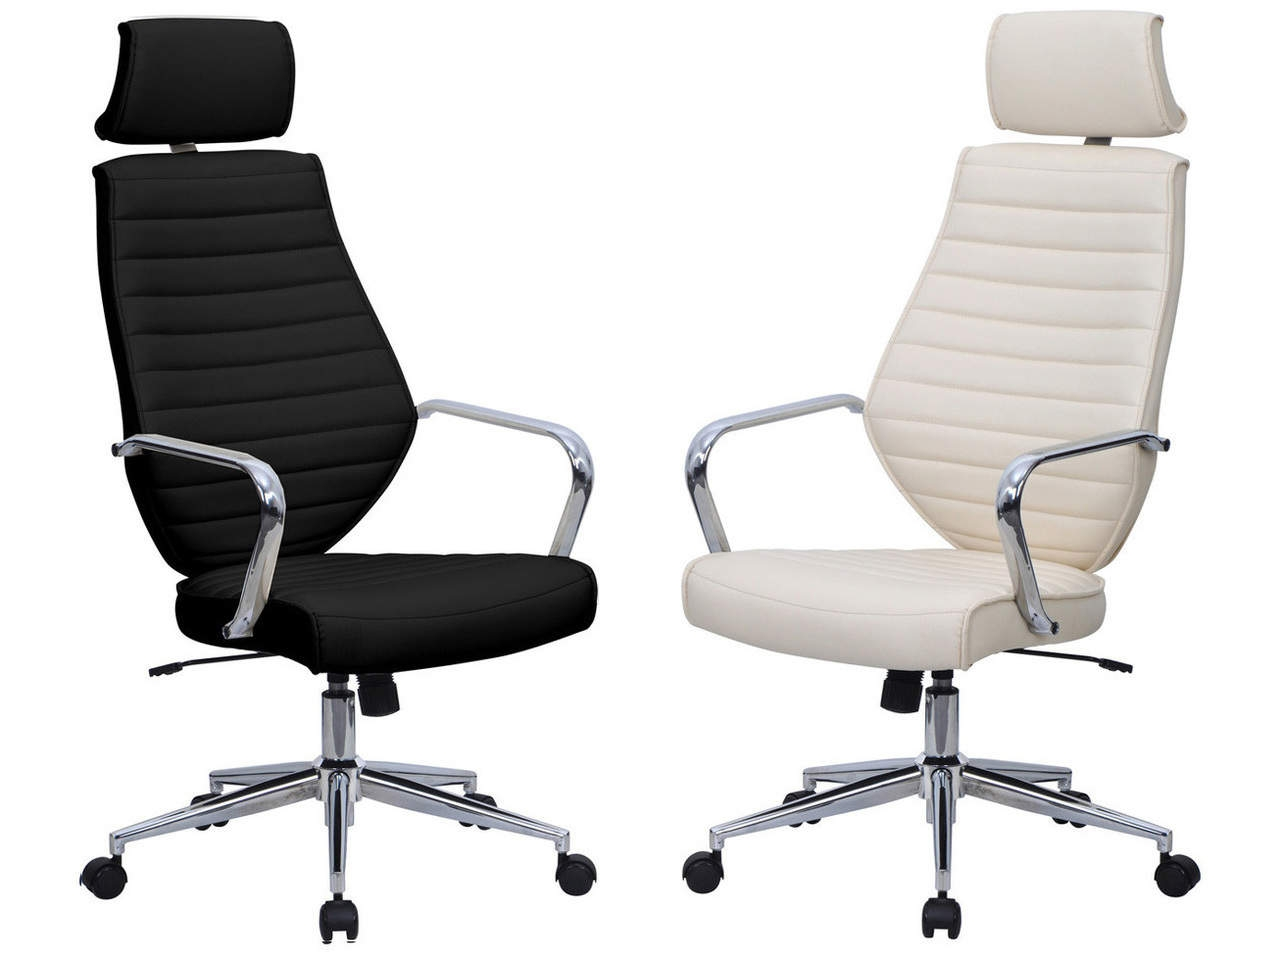 Atlas Leather High Back Executive Chair in Black or White